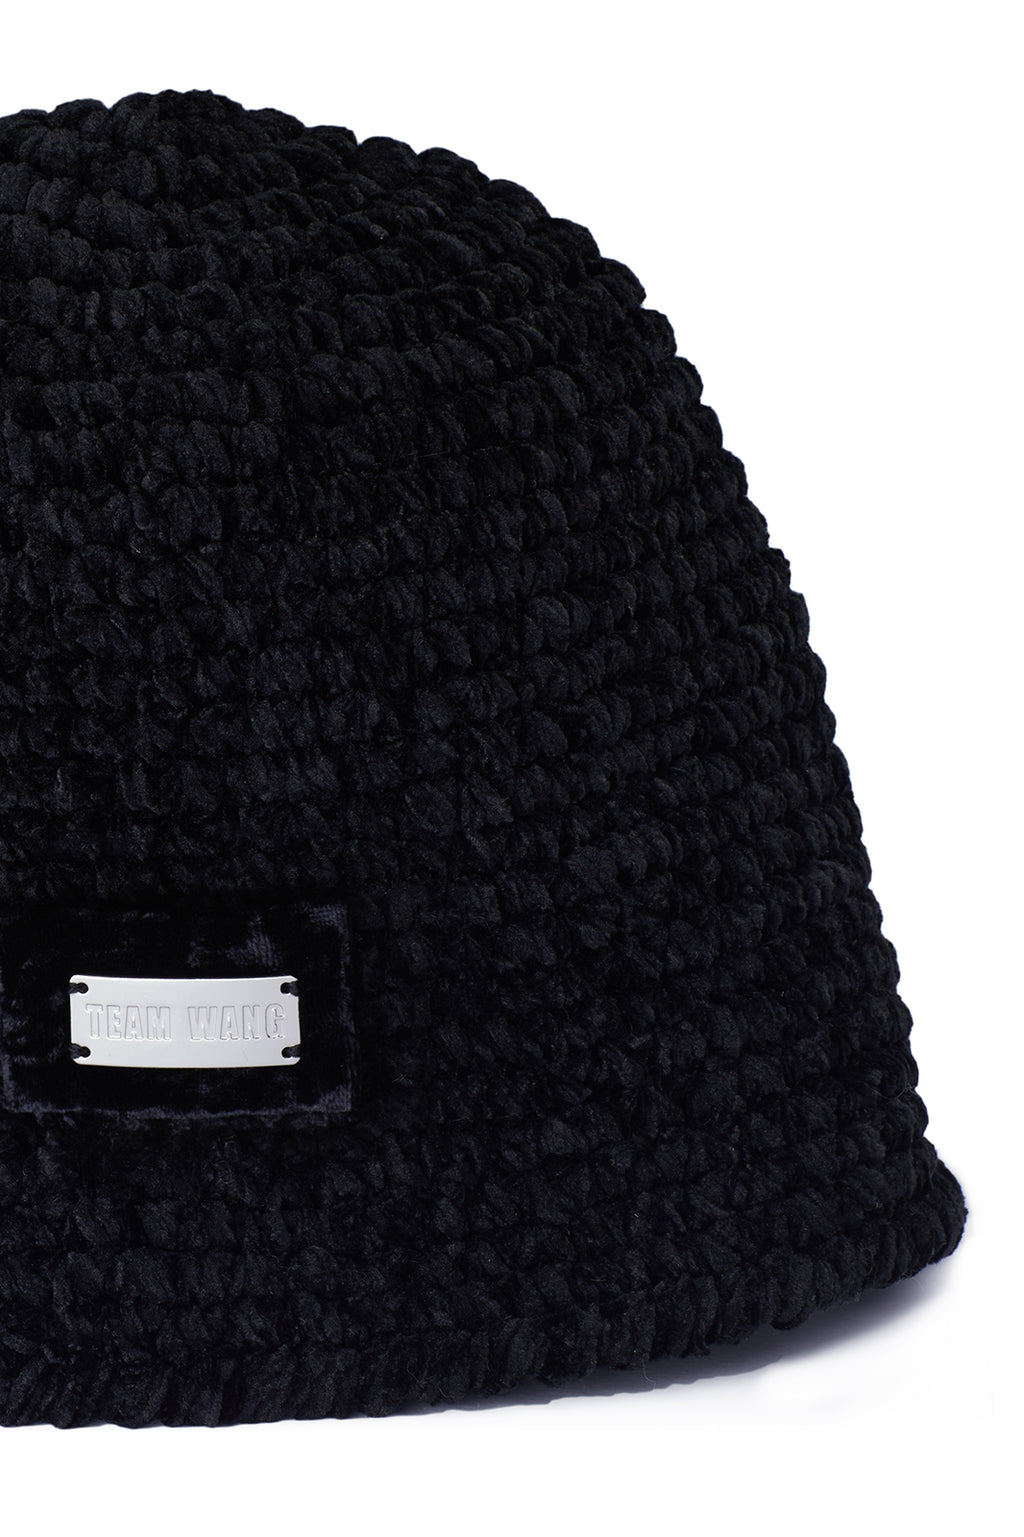 TEAM WANG KNITTED BUCKET HAT